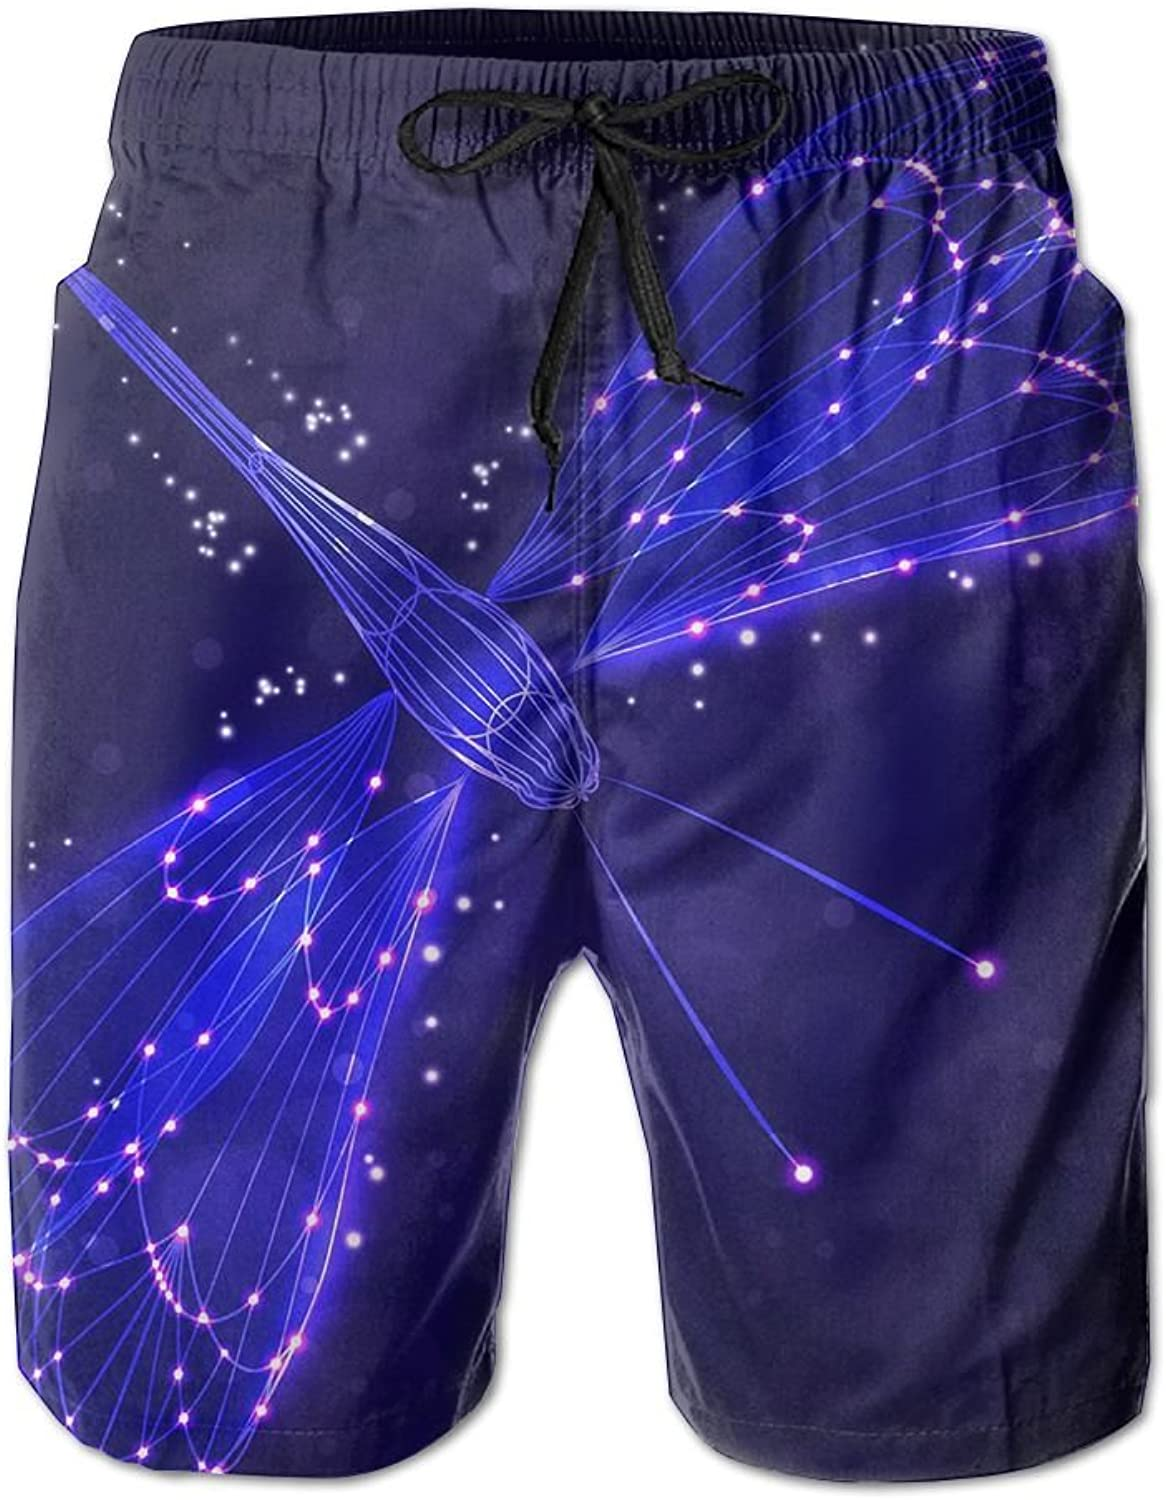 9b705dc7c8 Tydo Quick Dry Beach Shorts blueee Dragonfly Painting Surfing Trunks Trunks  Trunks Surf Board Pants With Pockets For Men d146a0